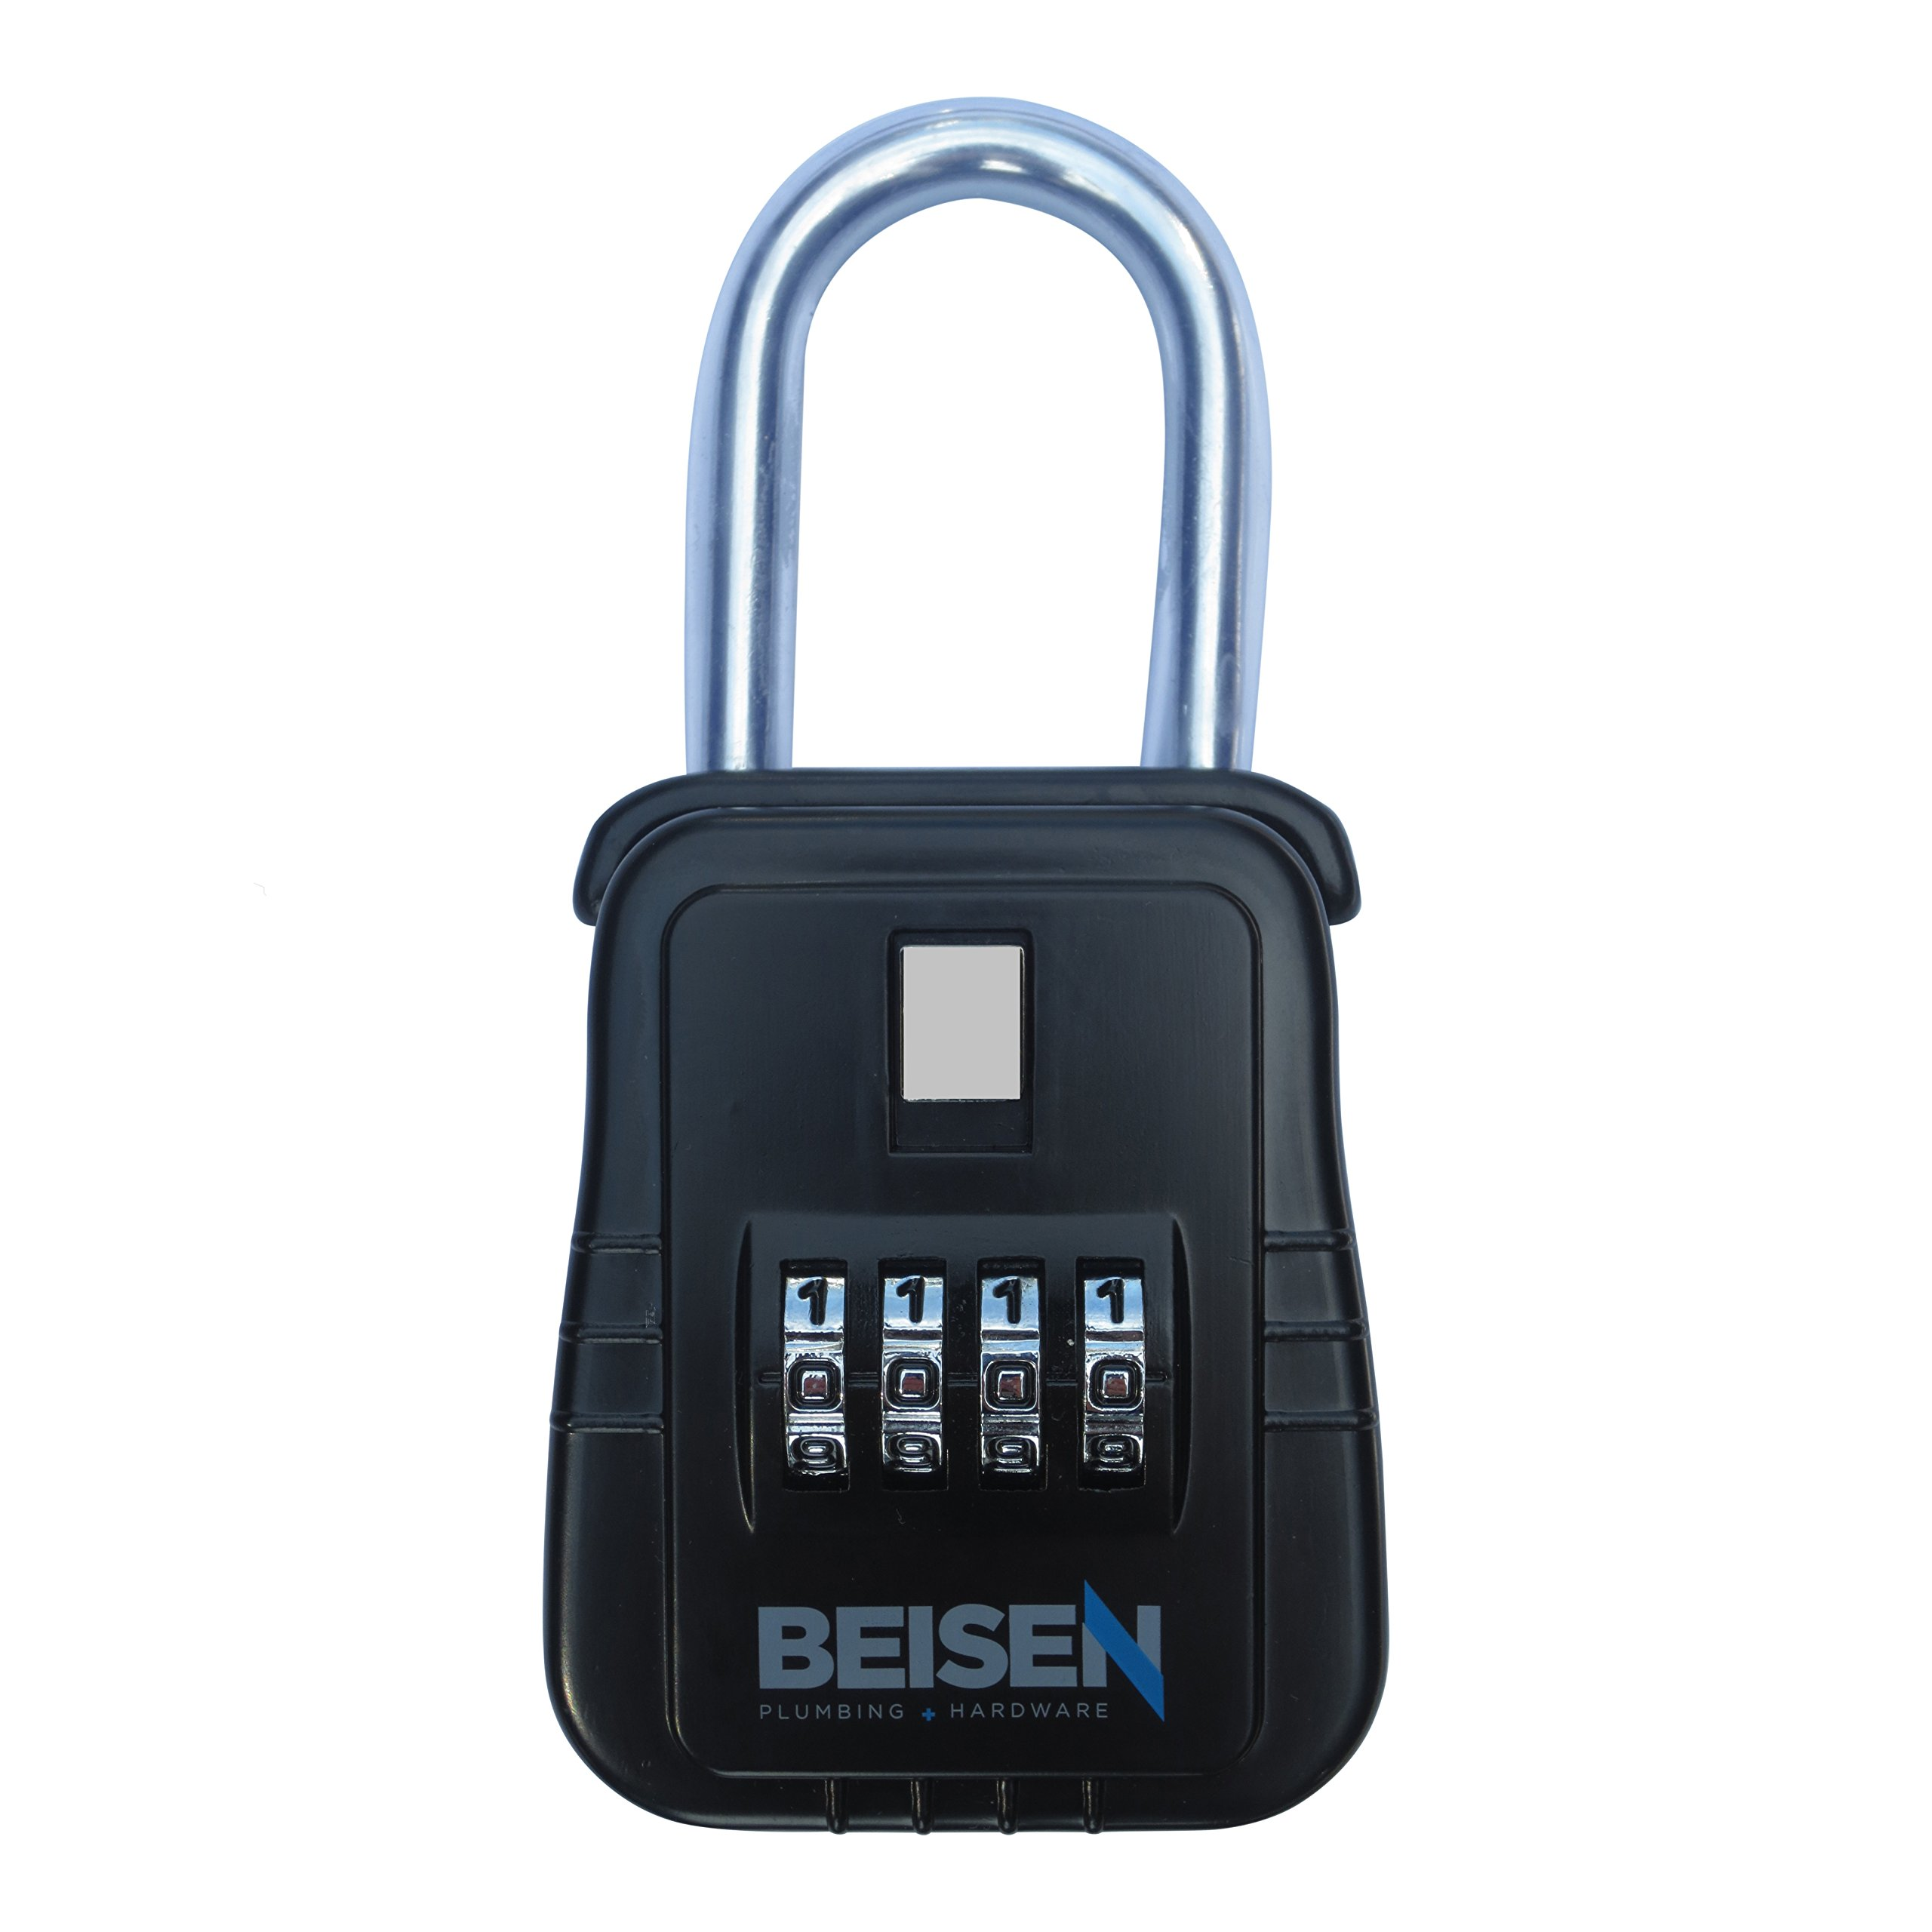 Beisen Key Safe Realtor Lock Box with Set-Your-Own Combination Lock